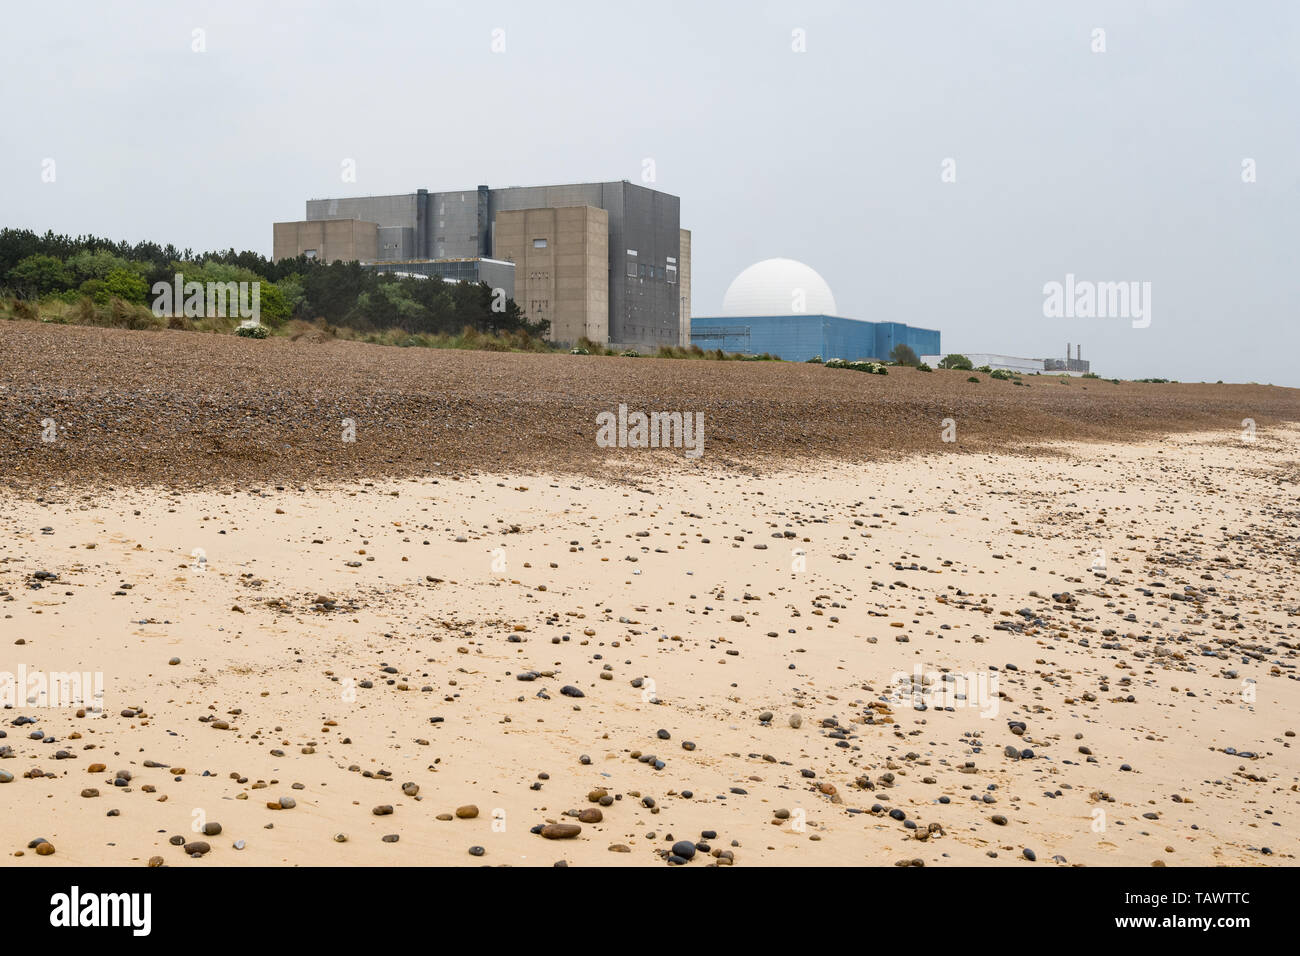 Sizewell A and Sizewell B nuclear power stations, Sizewell, Suffolk, England, UK - Stock Image